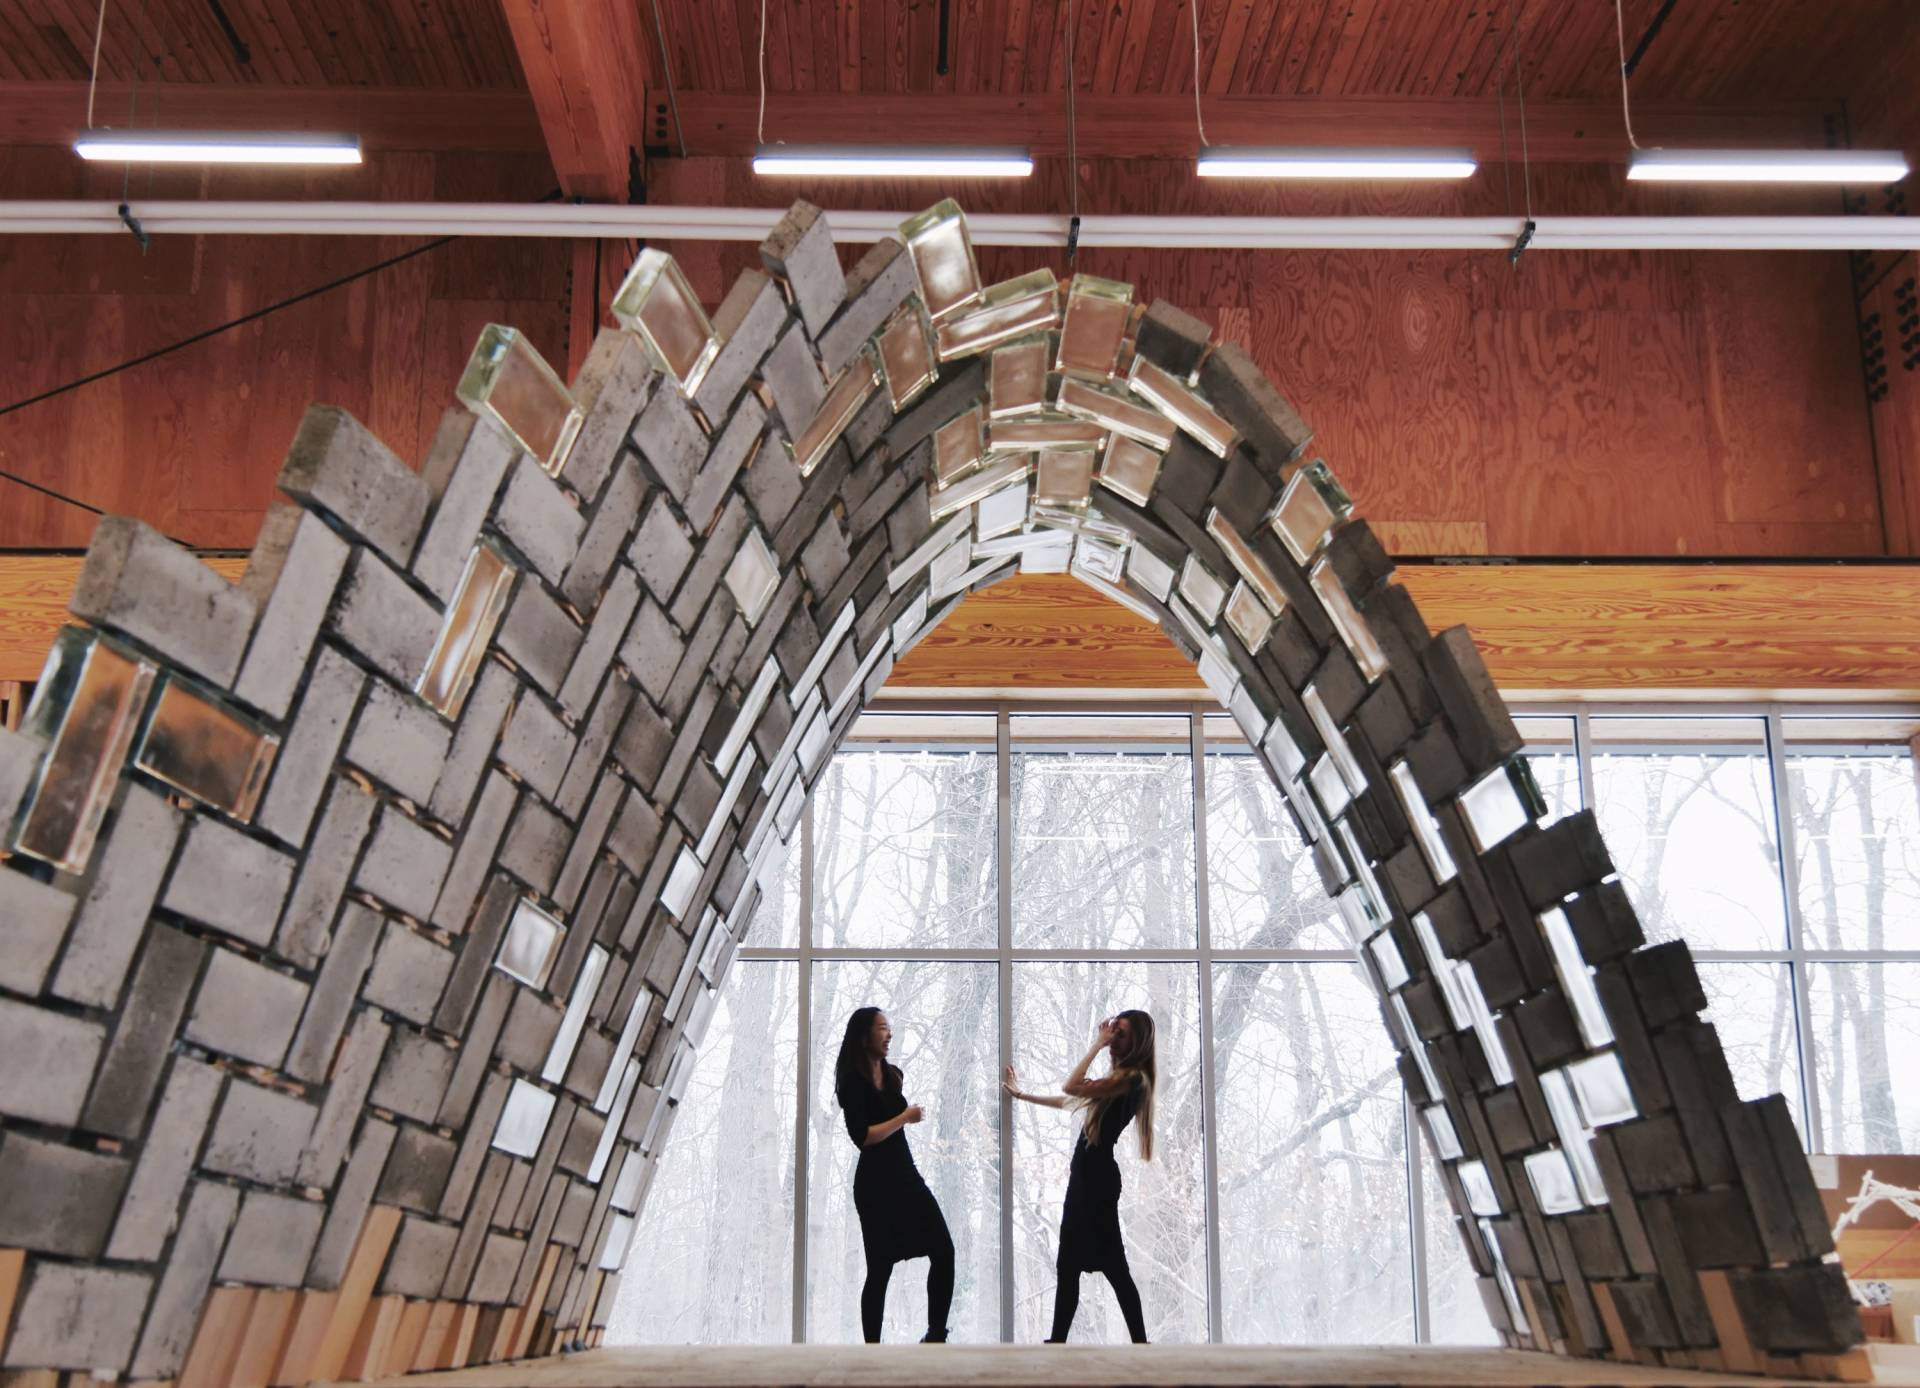 2 archictects stand under a robot-built tunnel